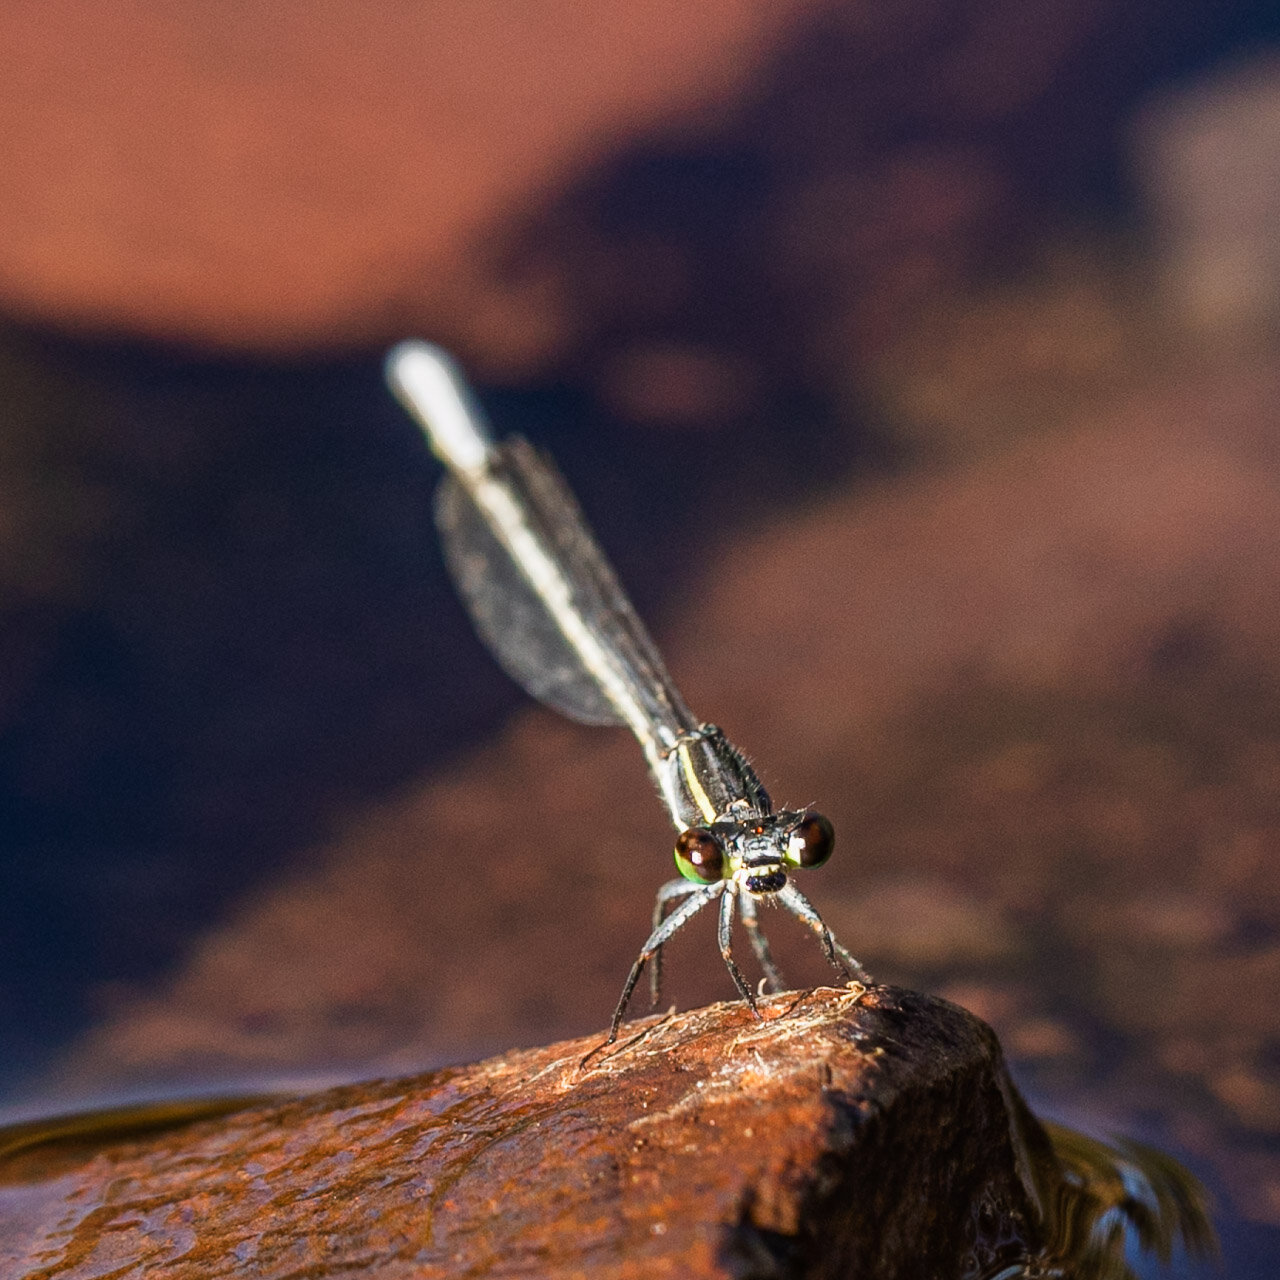 A dragonfly resting on a rock in the Pilbara